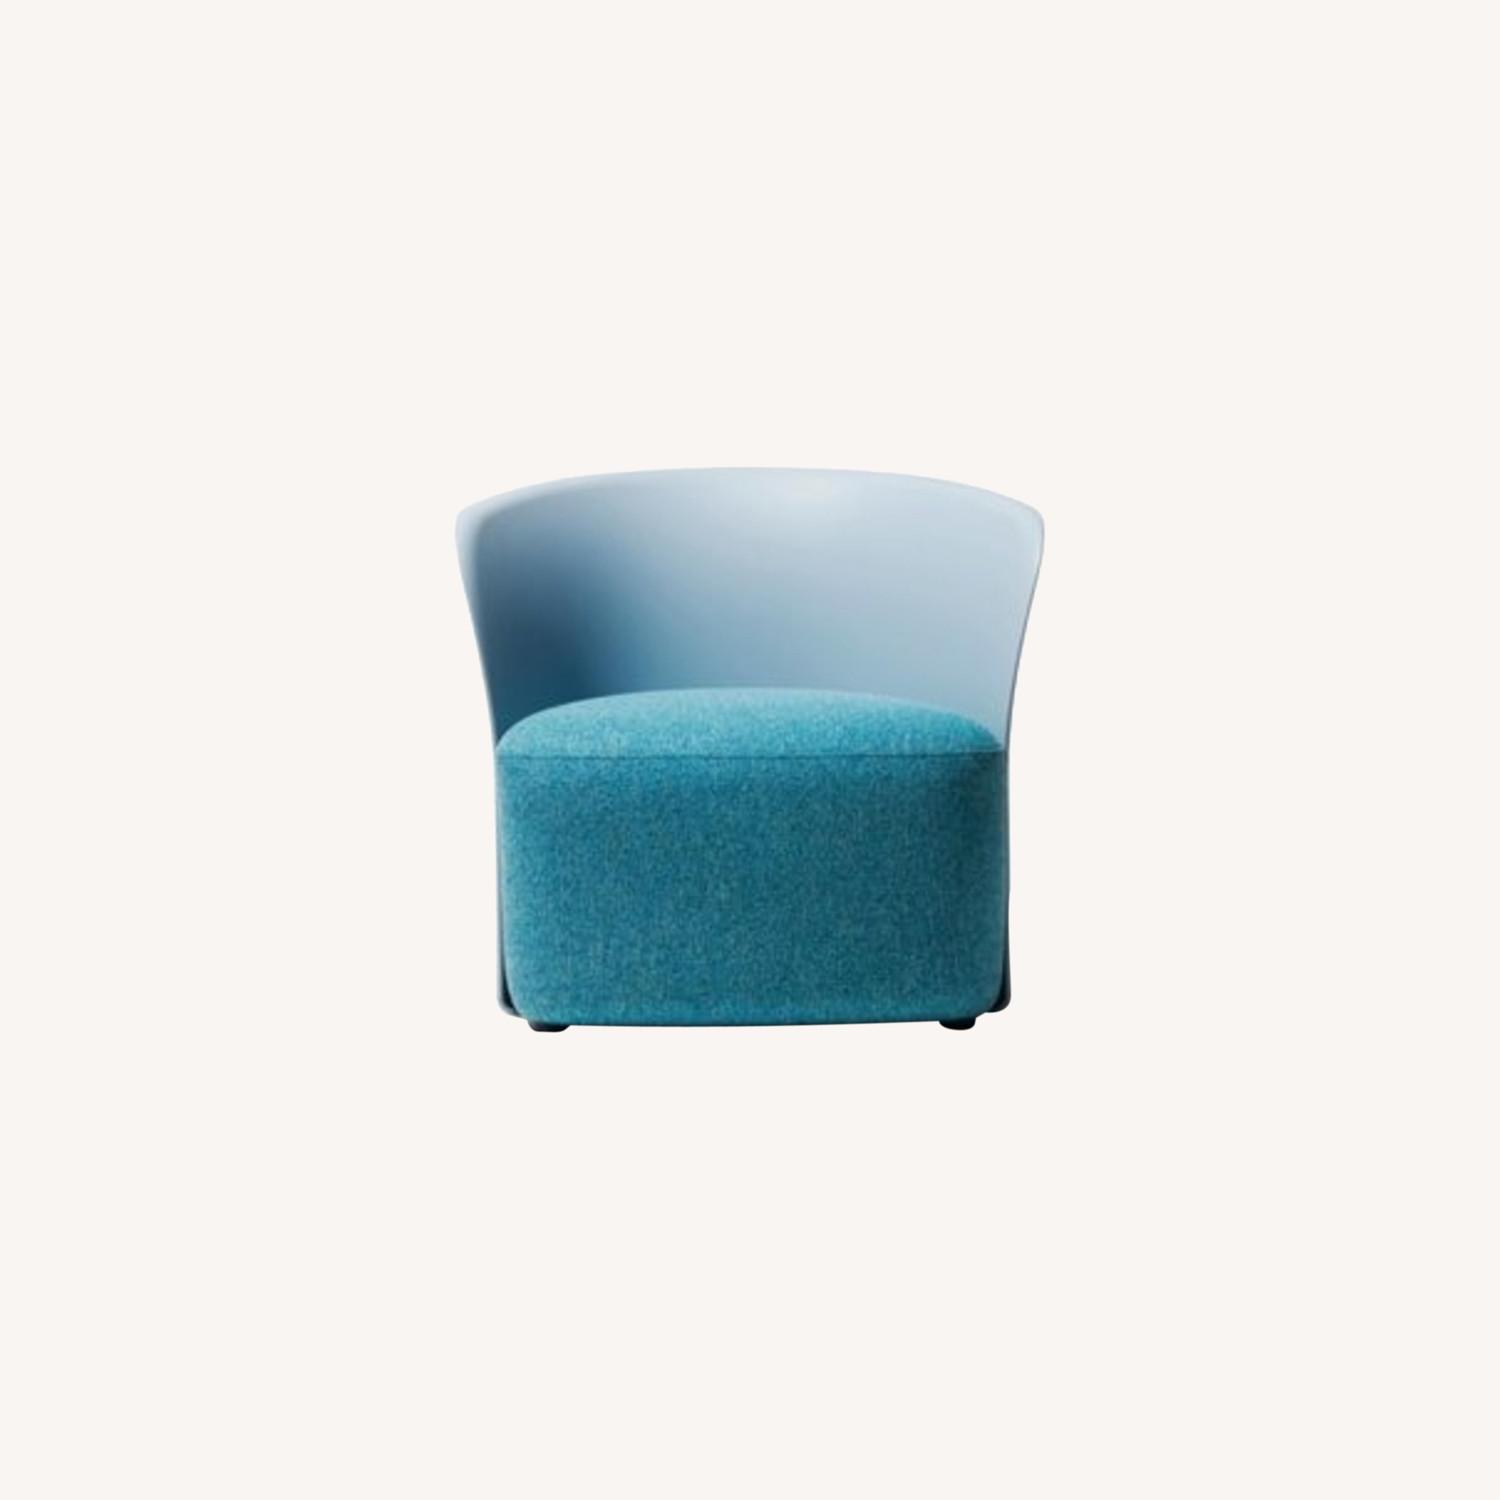 Industry West Juniper Lounge Chair - image-0